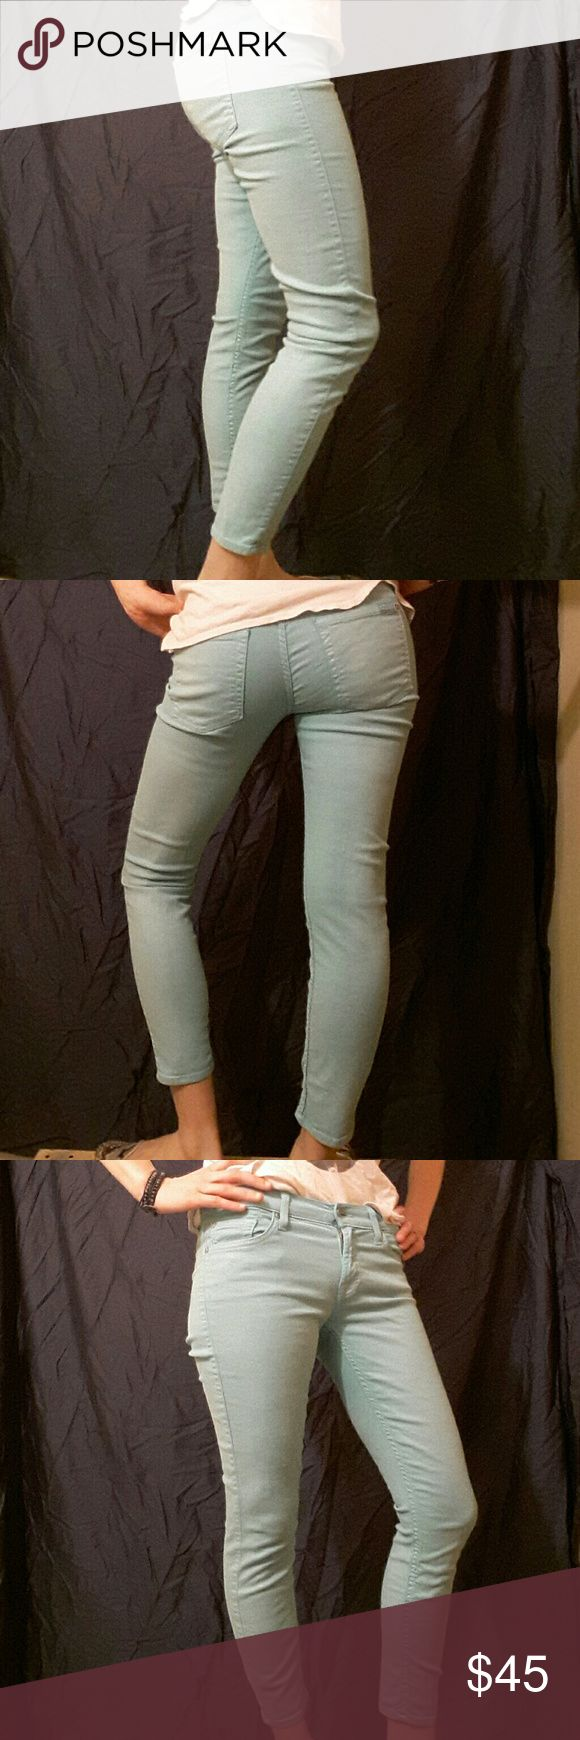 """7 For All Mankind baby blue skinny pants These baby blue 7 For All Mankind skinny pants are super cute for spring and summer. These have a bit of a silver shimmer to them that set then apart. Size 27 but fit like a size 4. Inseam is 24"""" 7 For All Mankind Jeans Skinny"""